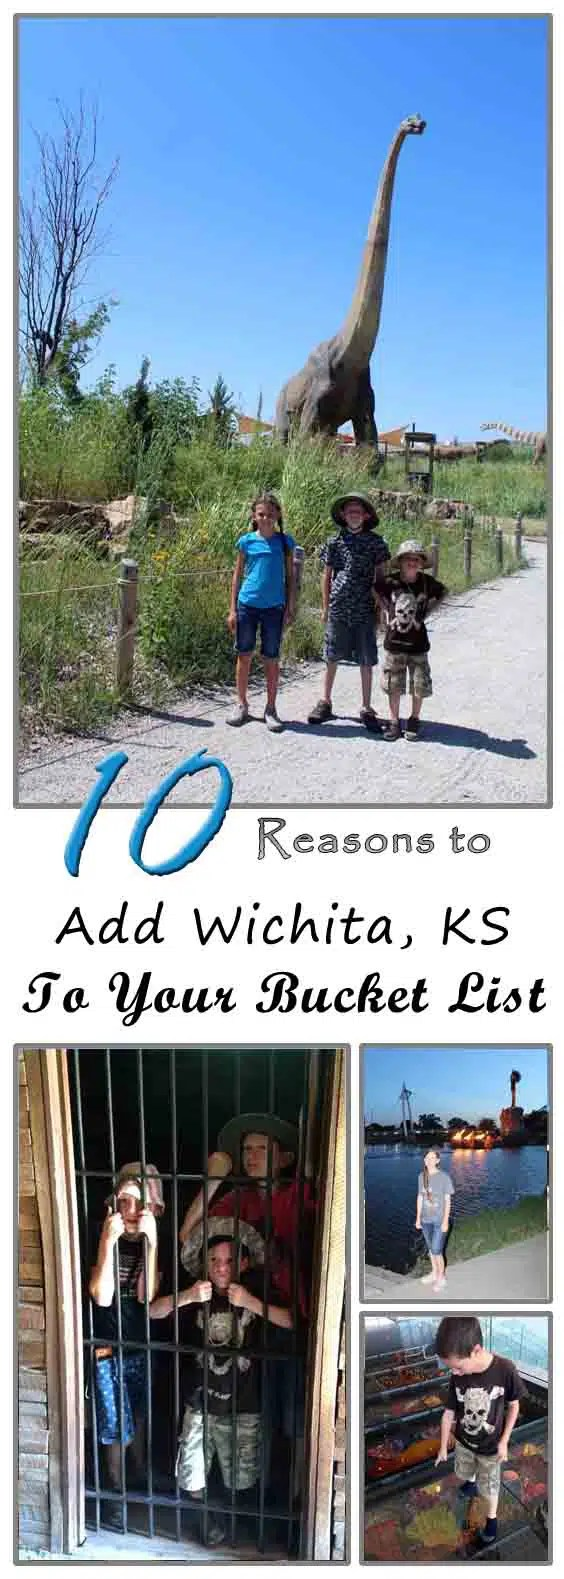 10 Reasons to Add Wichita to your family bucket list